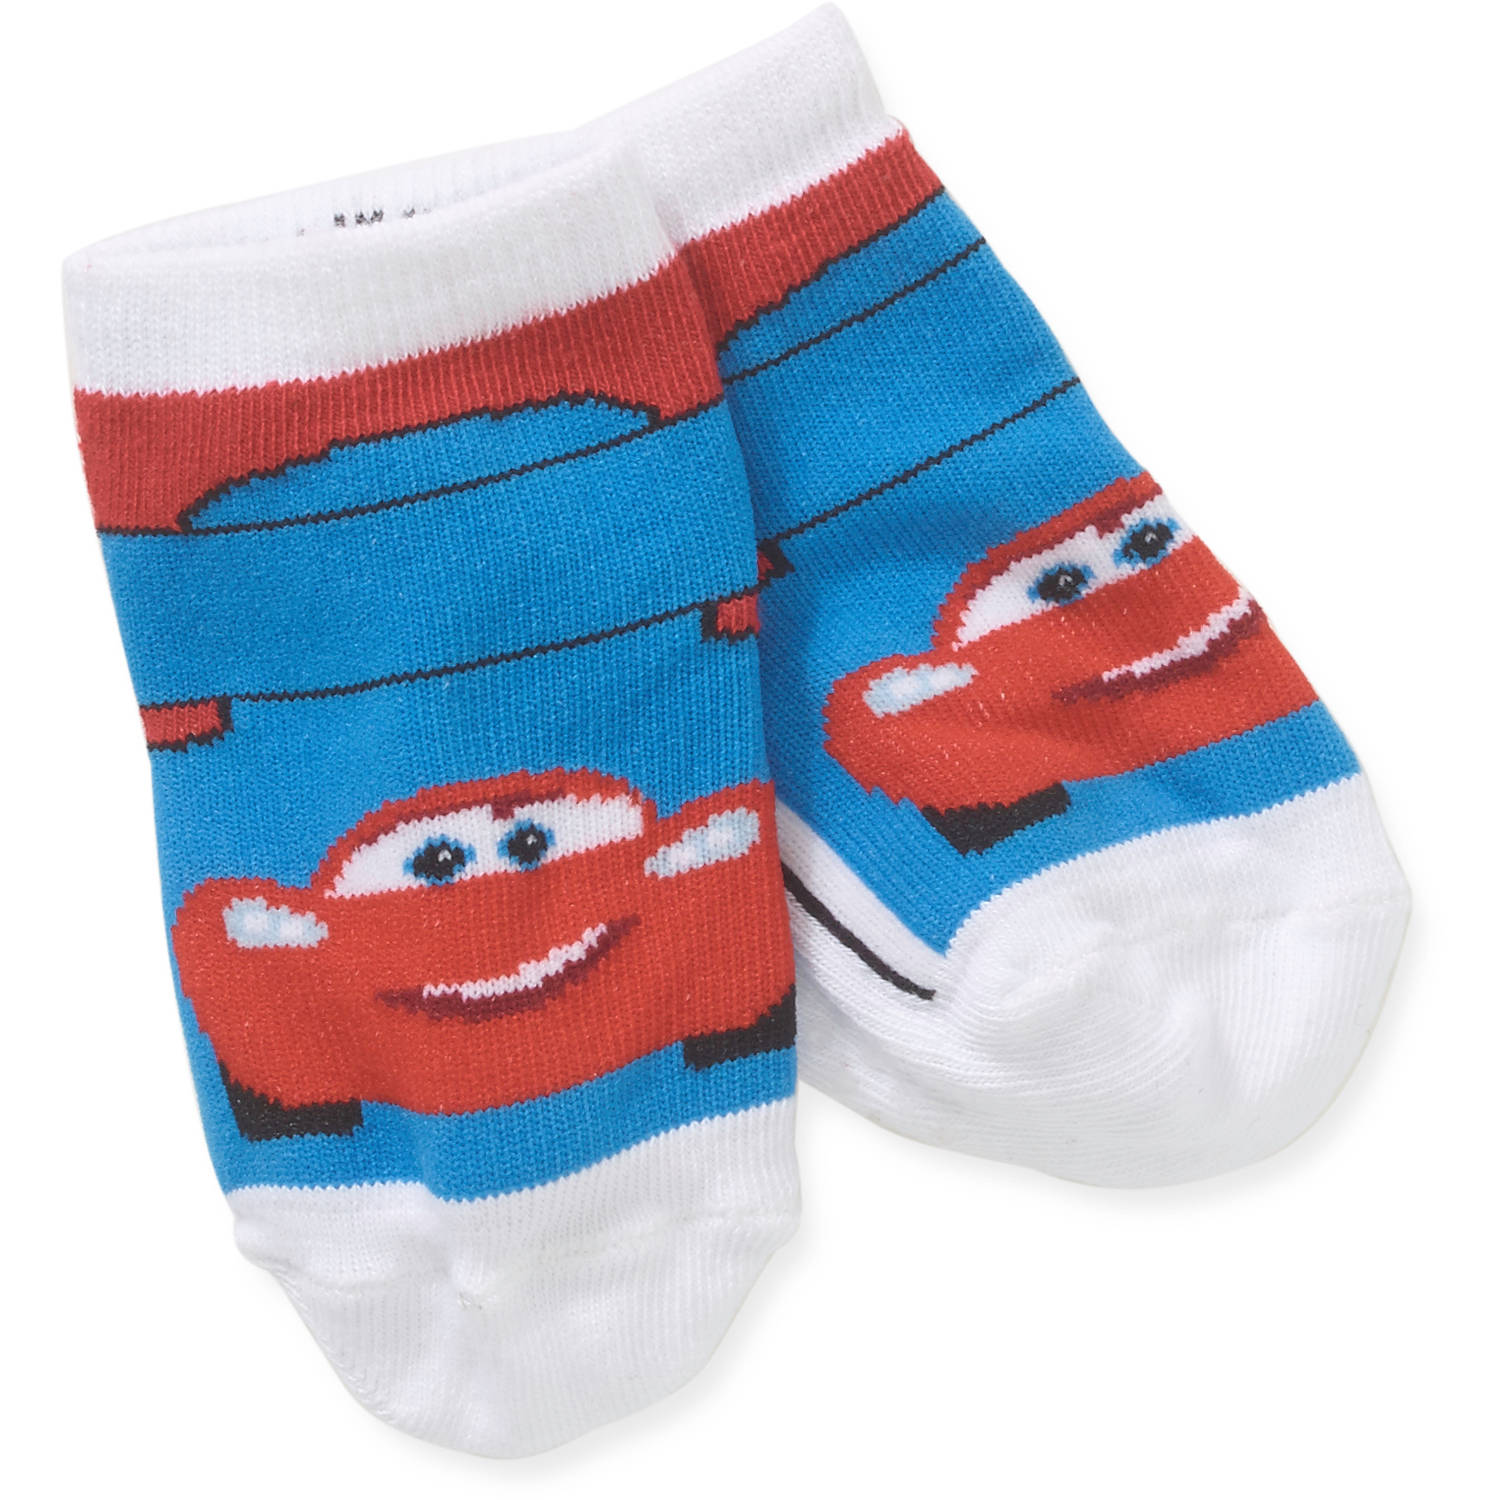 Cars Newborn Baby Boy Quarter Socks - 3 Pack